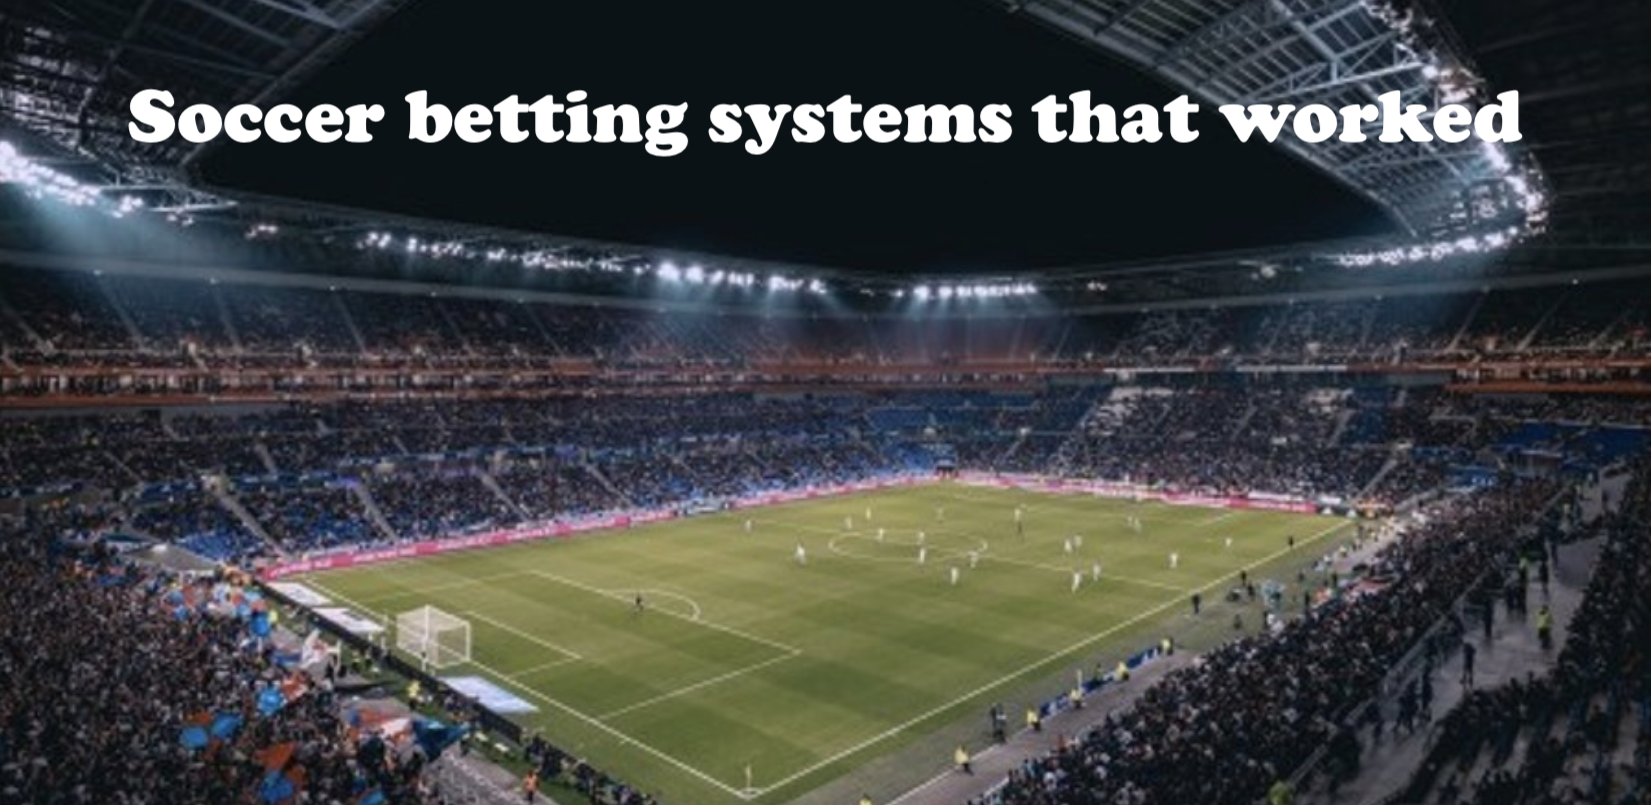 Soccer betting systems that worked